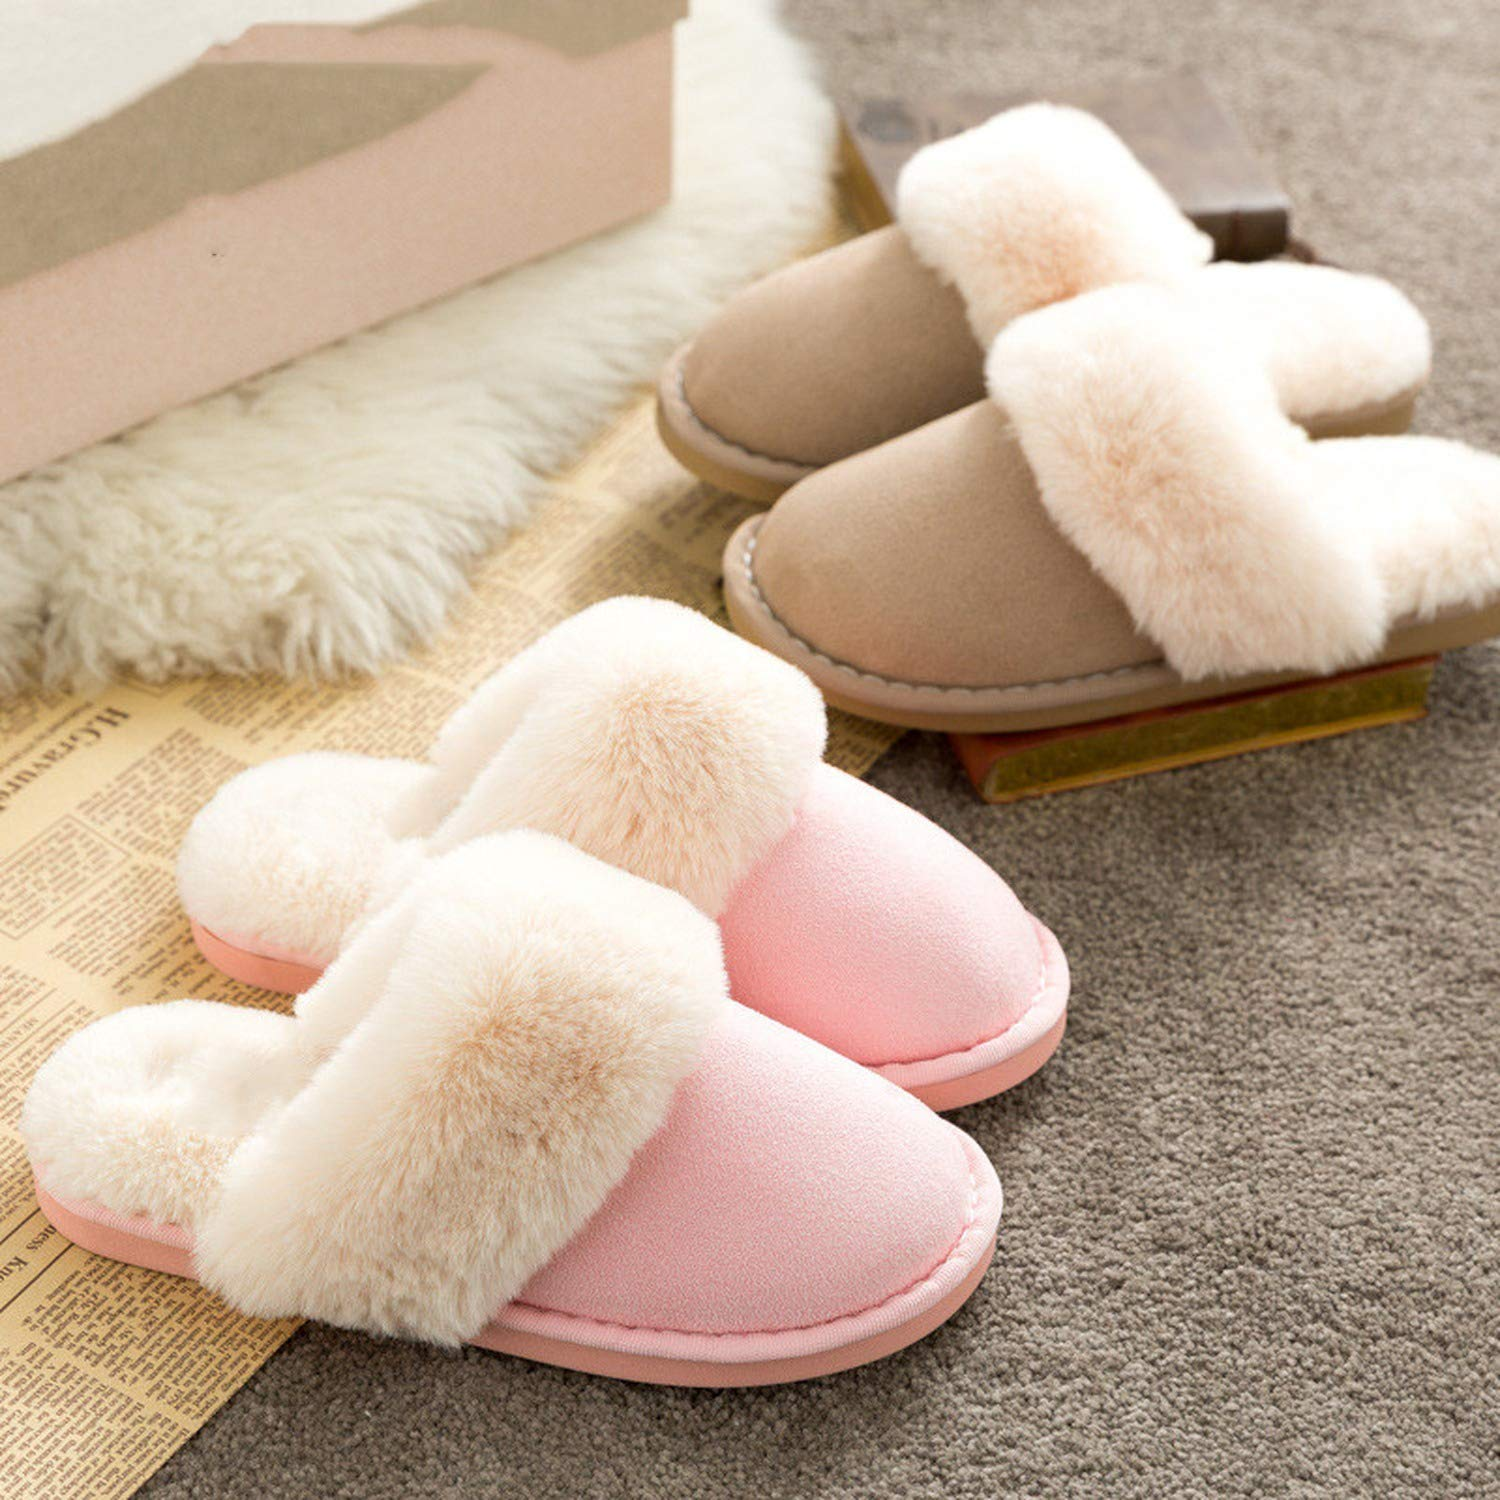 Fairy-Margot Winter Warm Ful Slippers Women Slippers Cotton Sheep Lovers Home Slippers House Shoes Woman,Blue,9.5